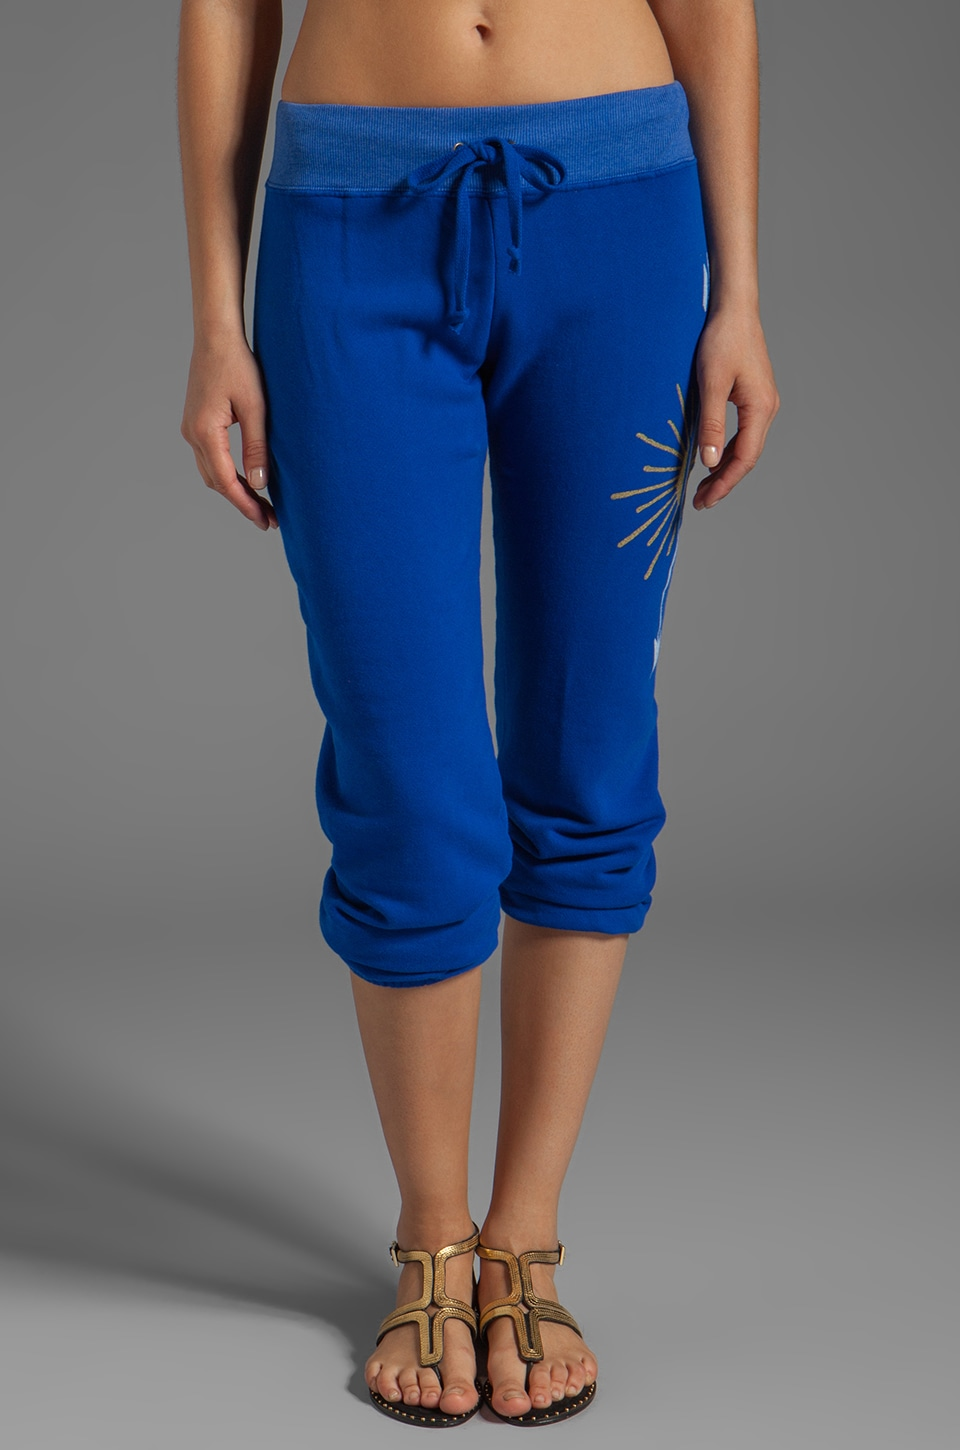 291 Love Light Baggy Pant in Electric Blue